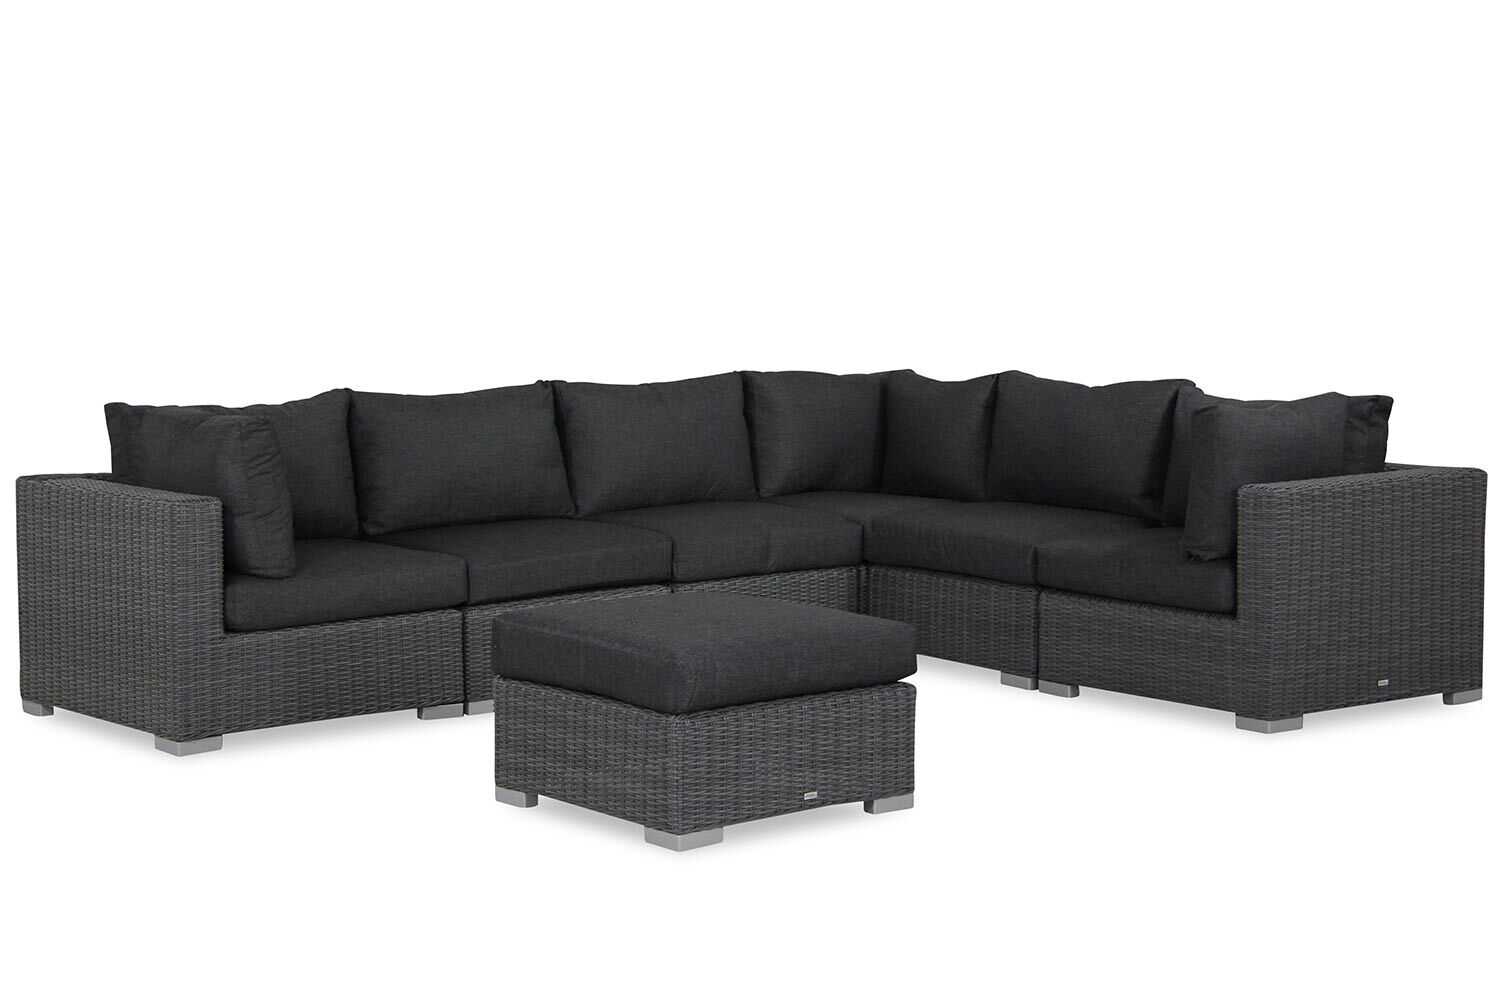 Garden Collections Toronto hoek loungeset 7-delig